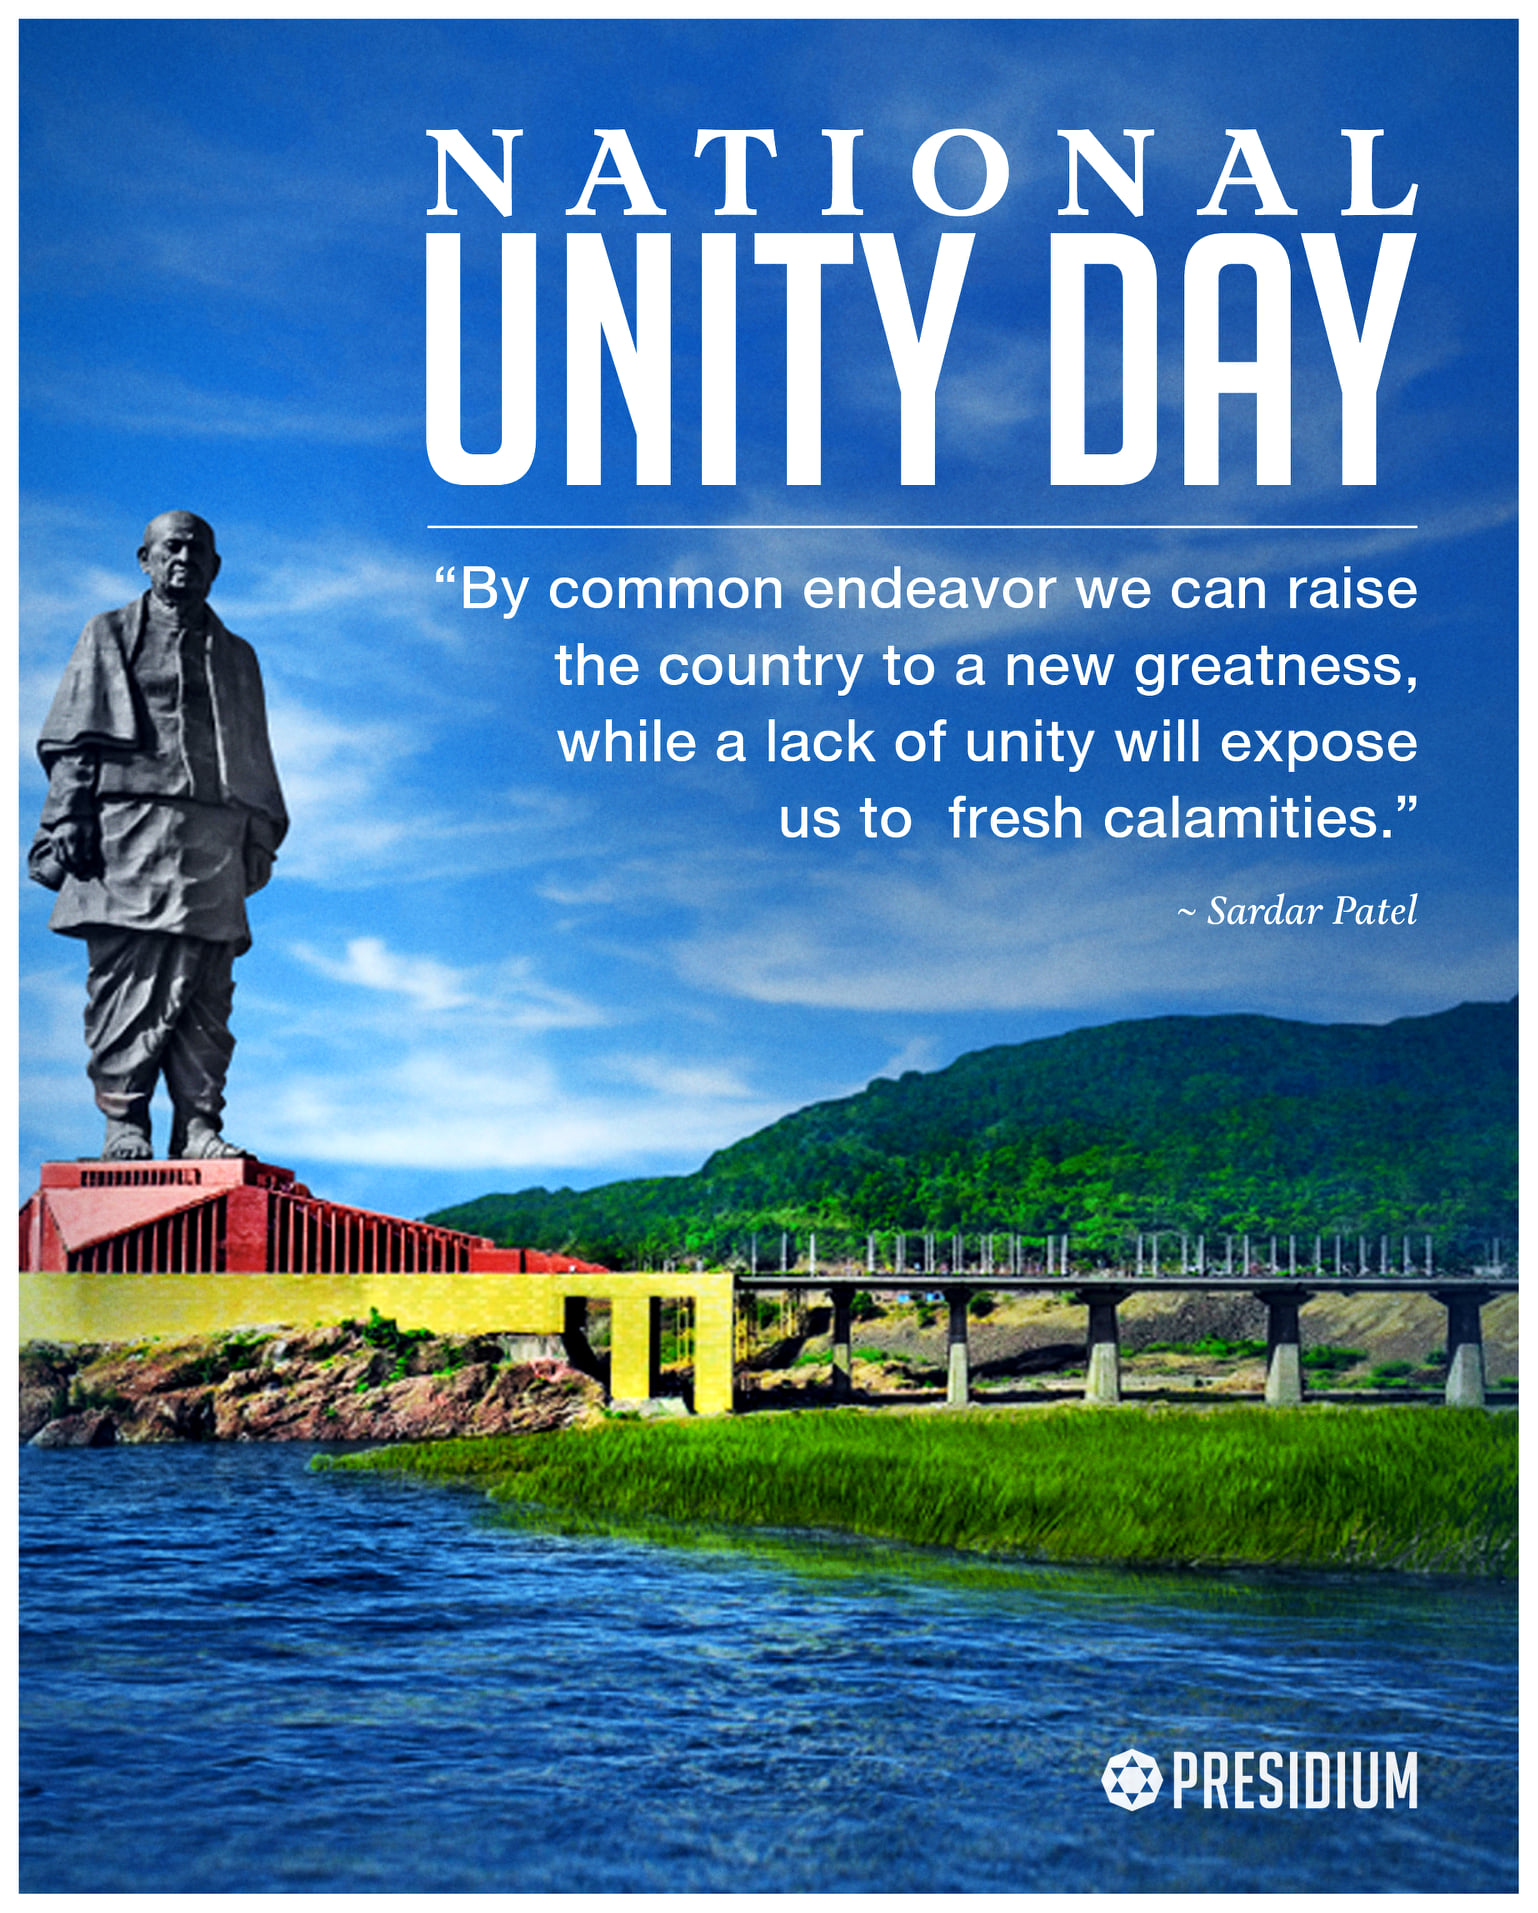 SALUTING THE WILL & RESOLVE OF INDIA'S IRON MAN